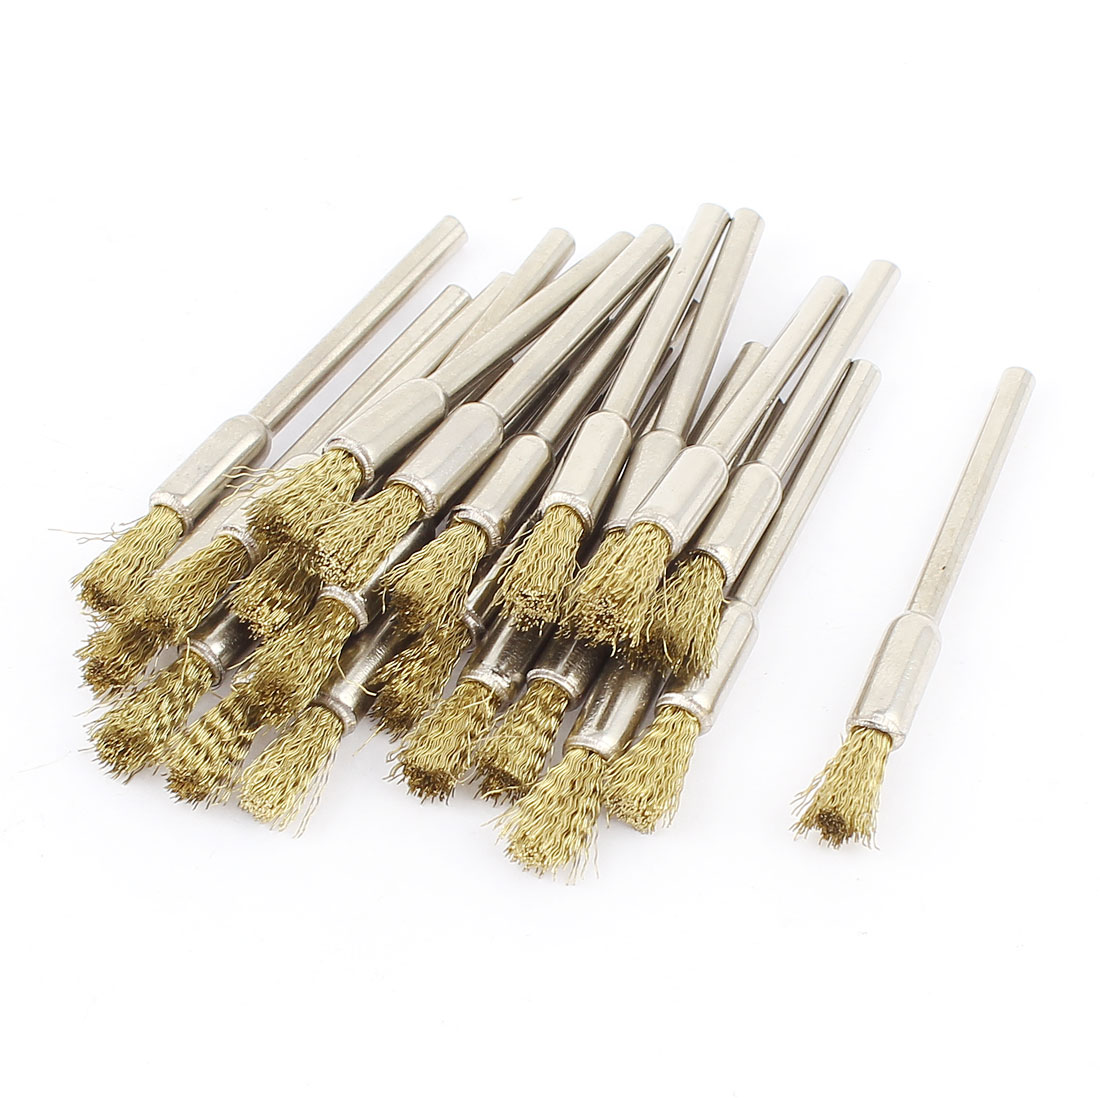 "1/8"" Round Shank Gold Tone Wire Pen Shaped Brushes Polishing Tool 22 Pcs"